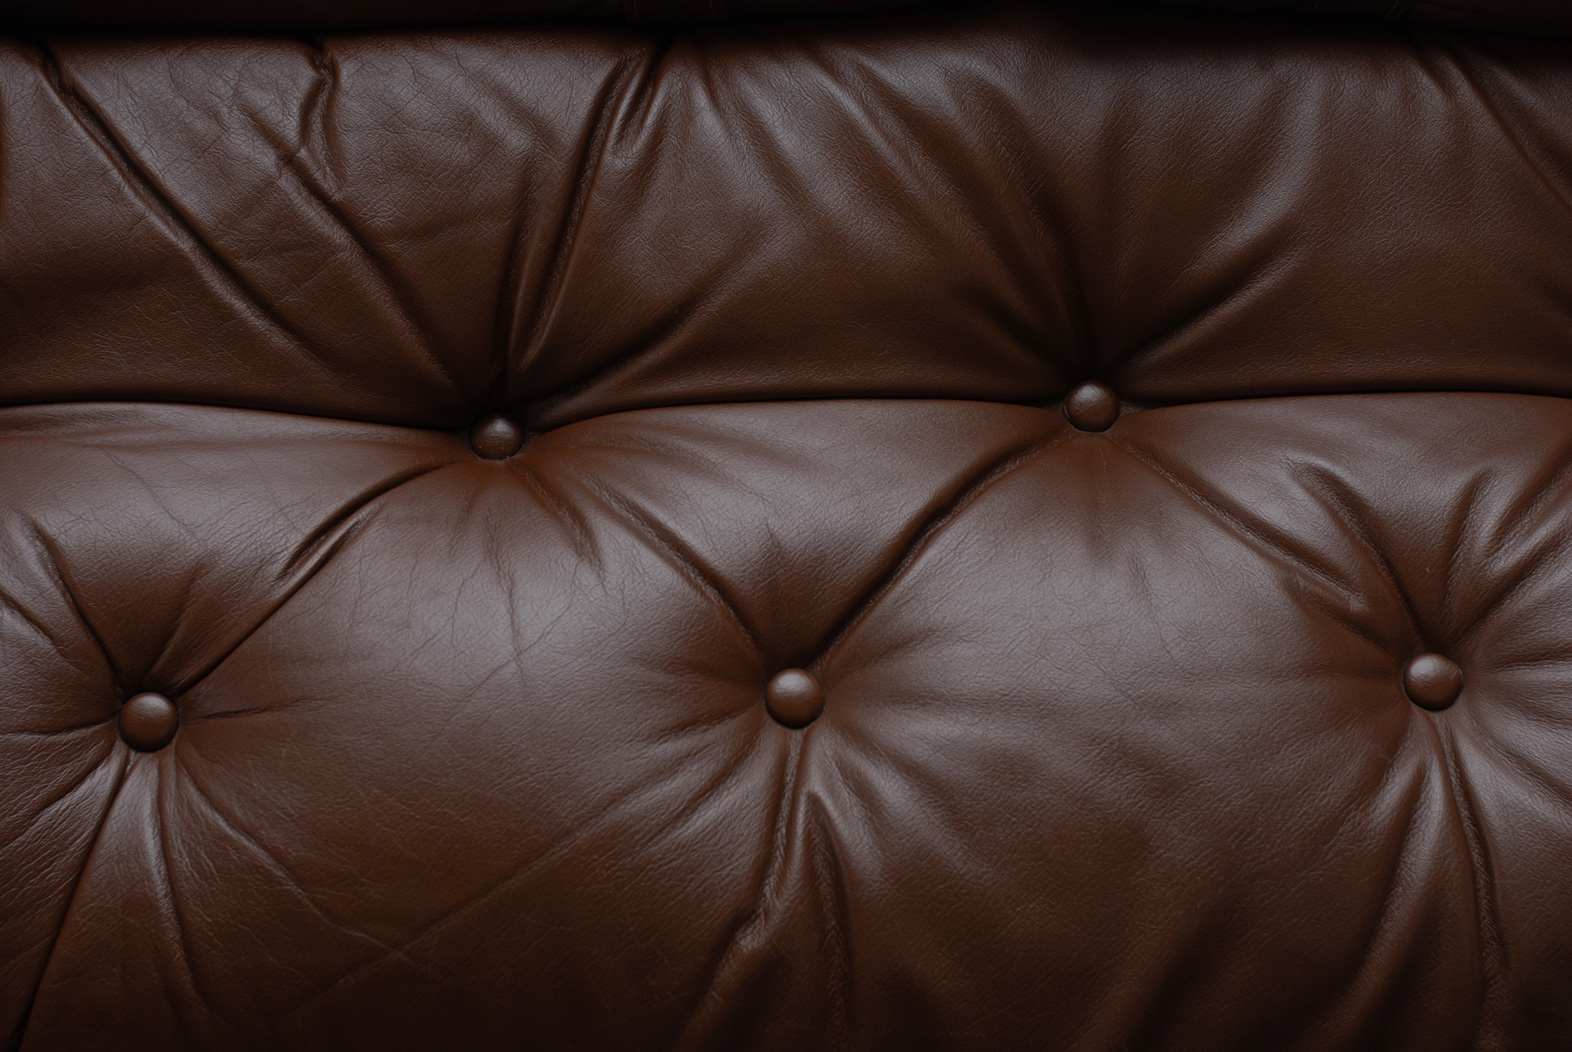 Free Stock Photo 1892 Leather Sofa Background Texture Freeimageslive